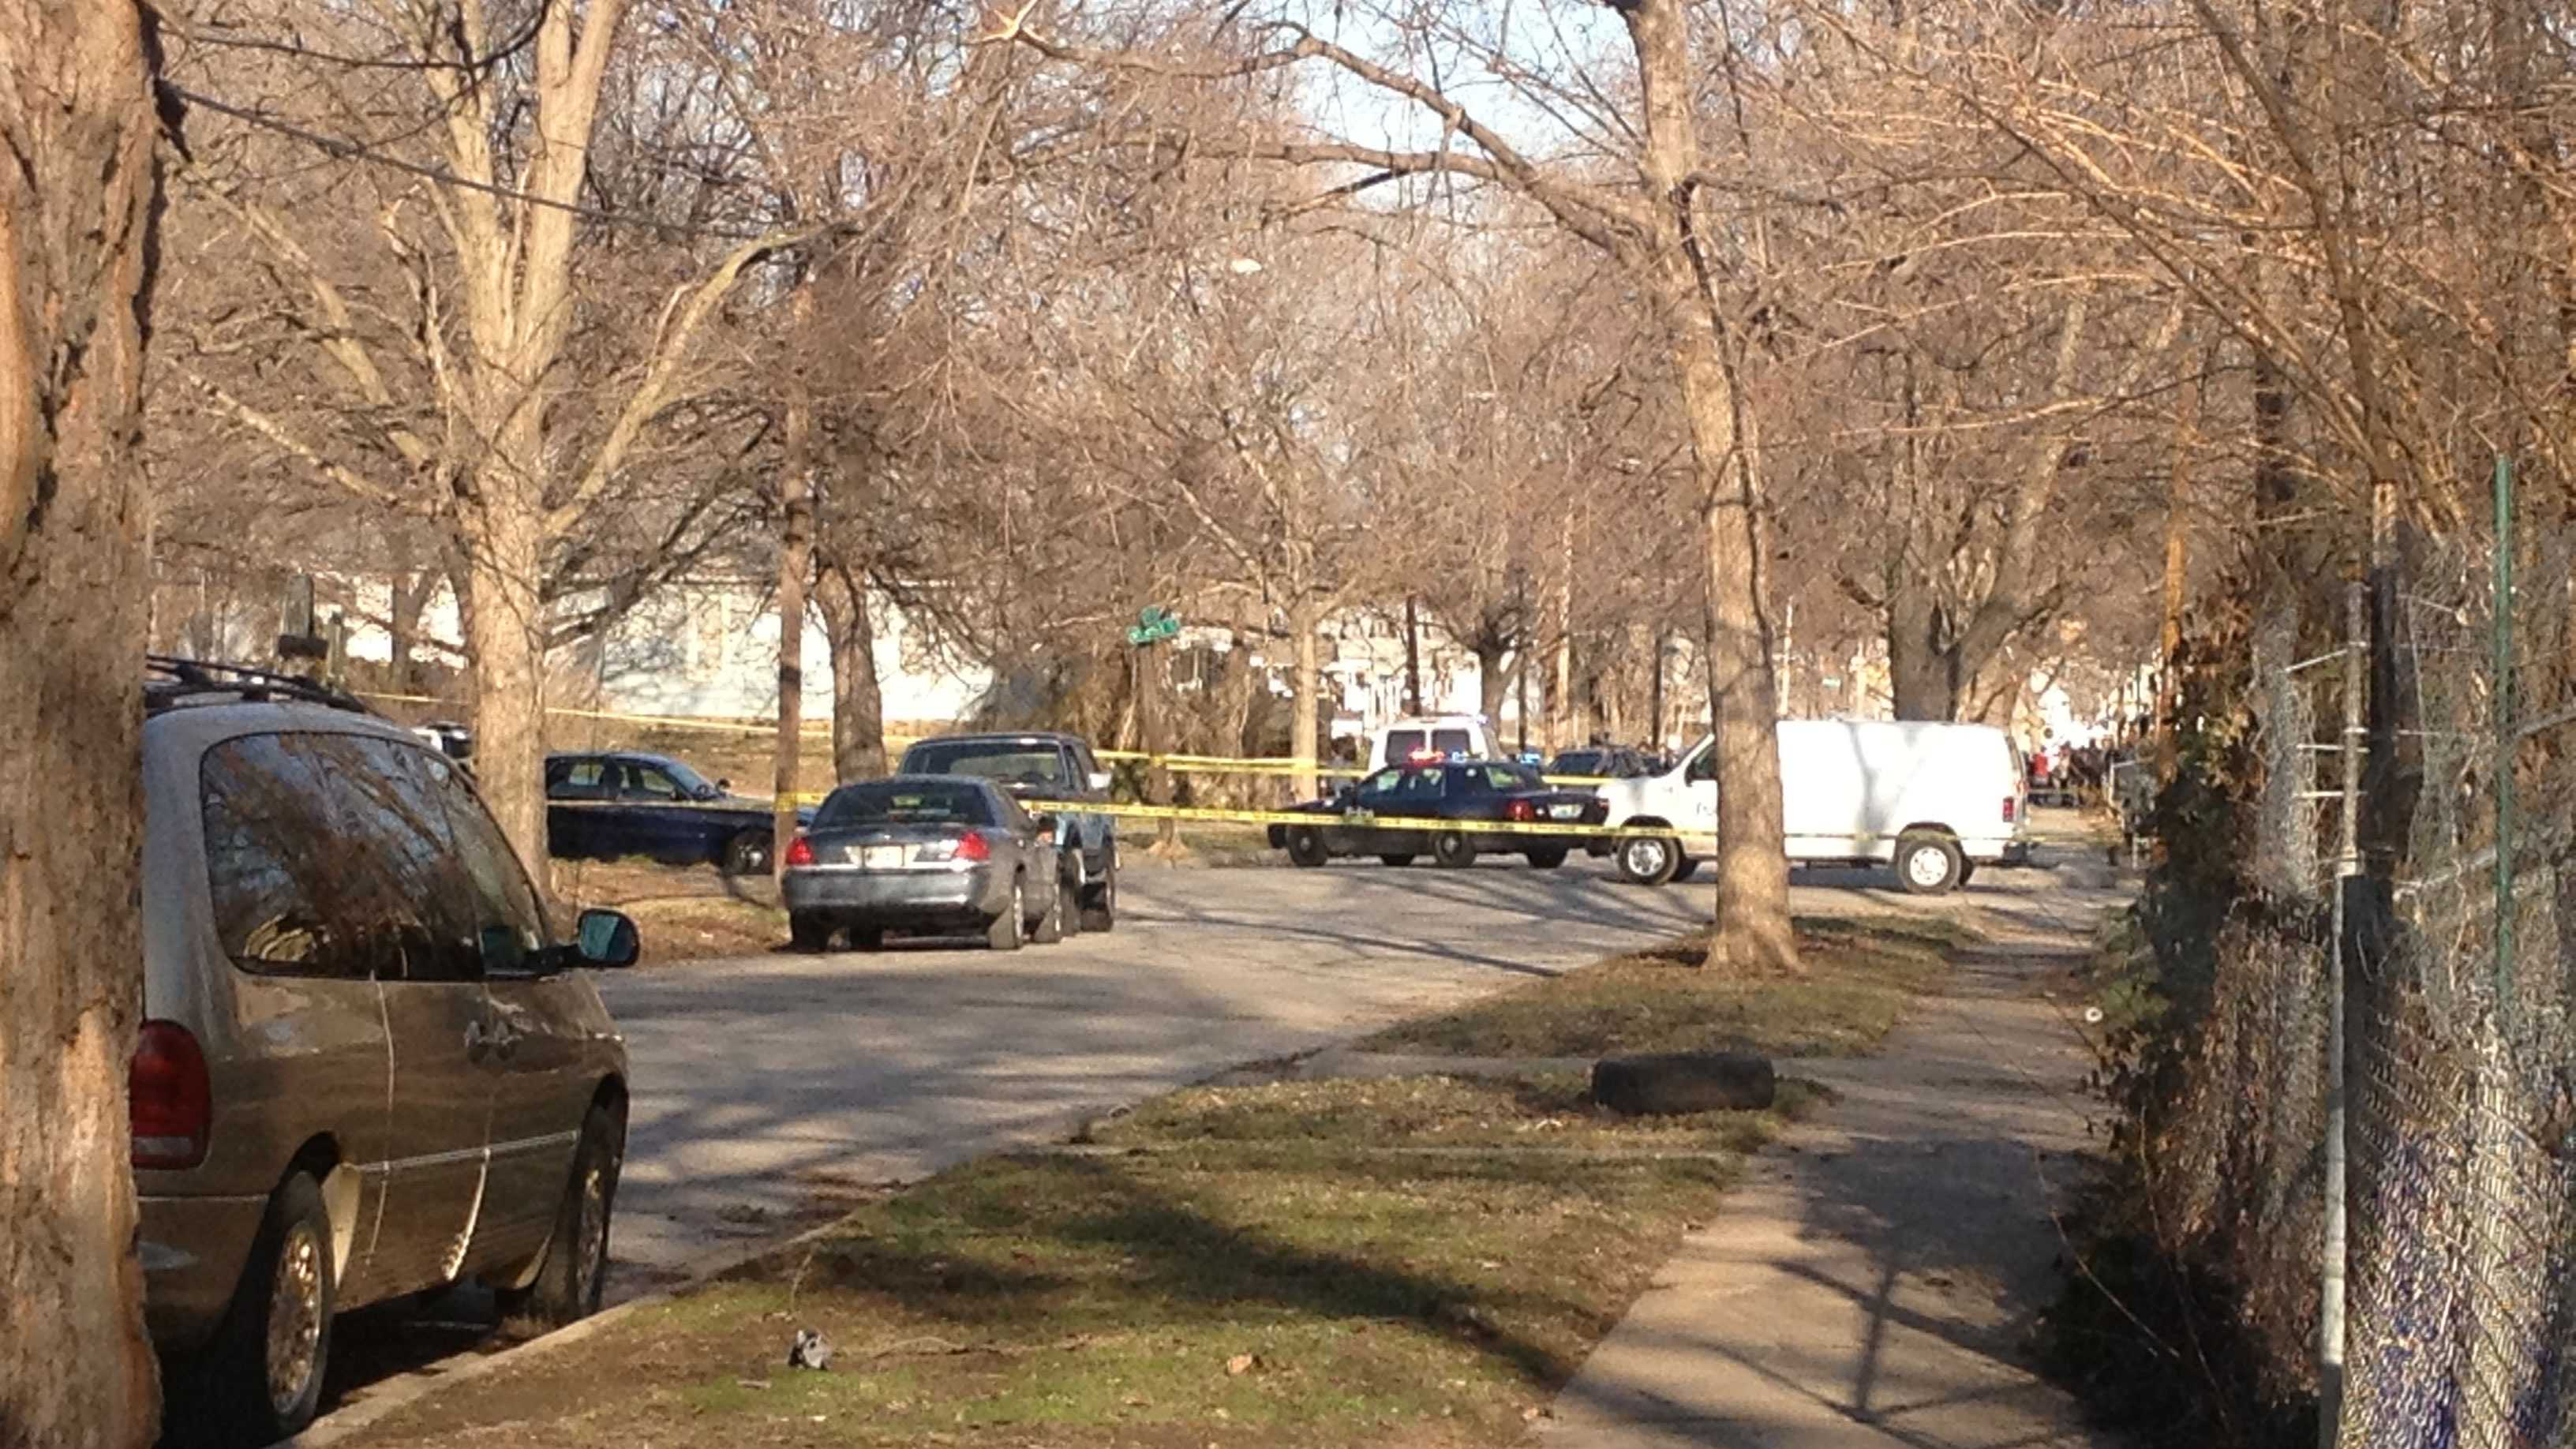 Officer-involved shooting, 11th, Myrtle